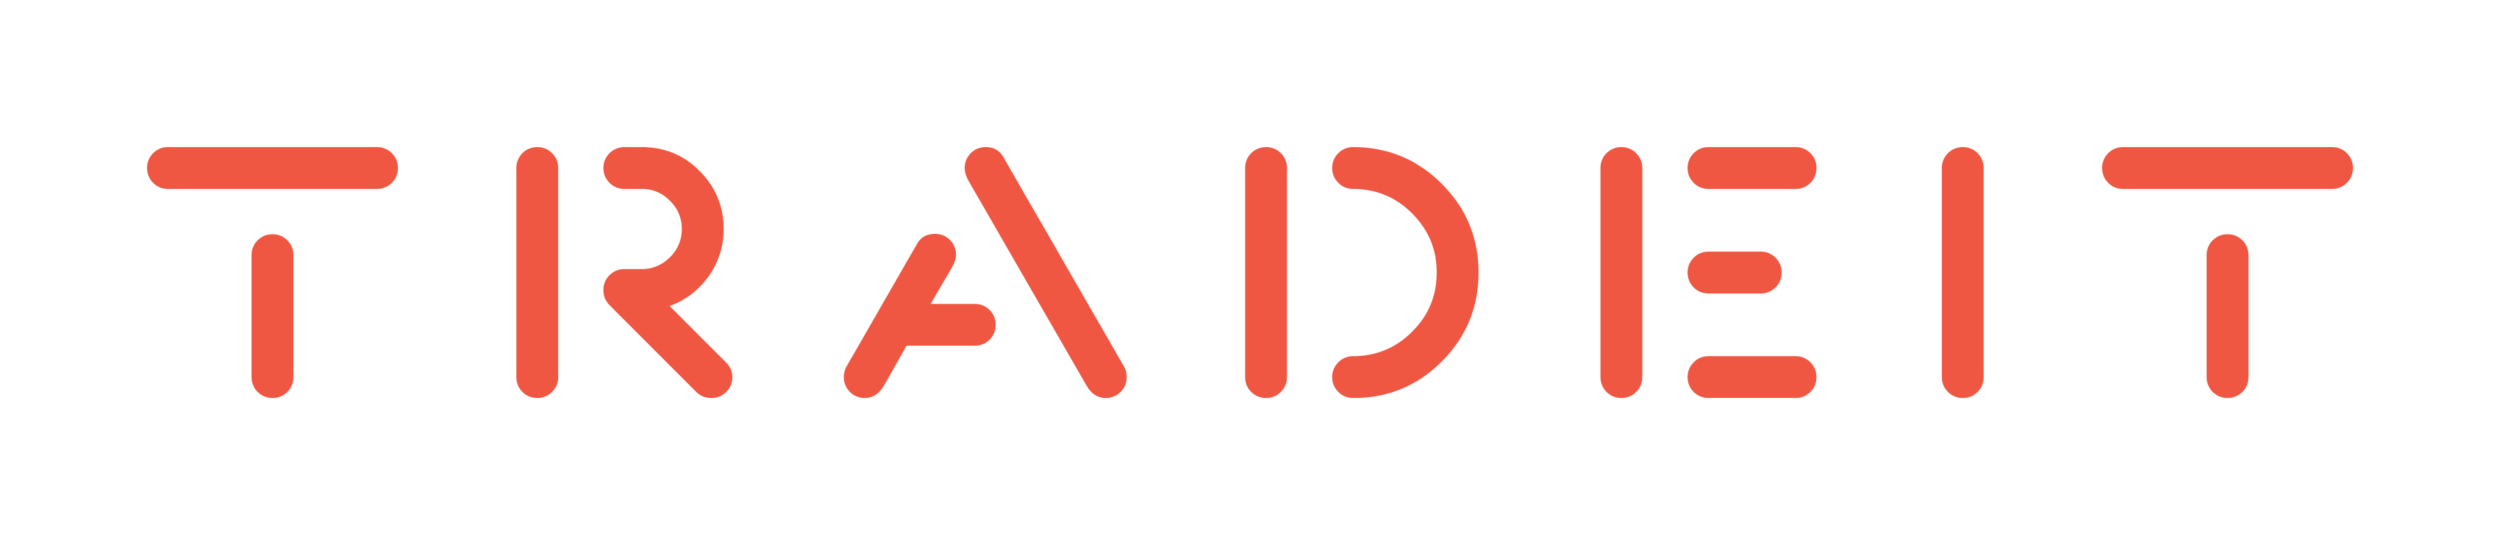 TradeIT_logo_transparent_background.png